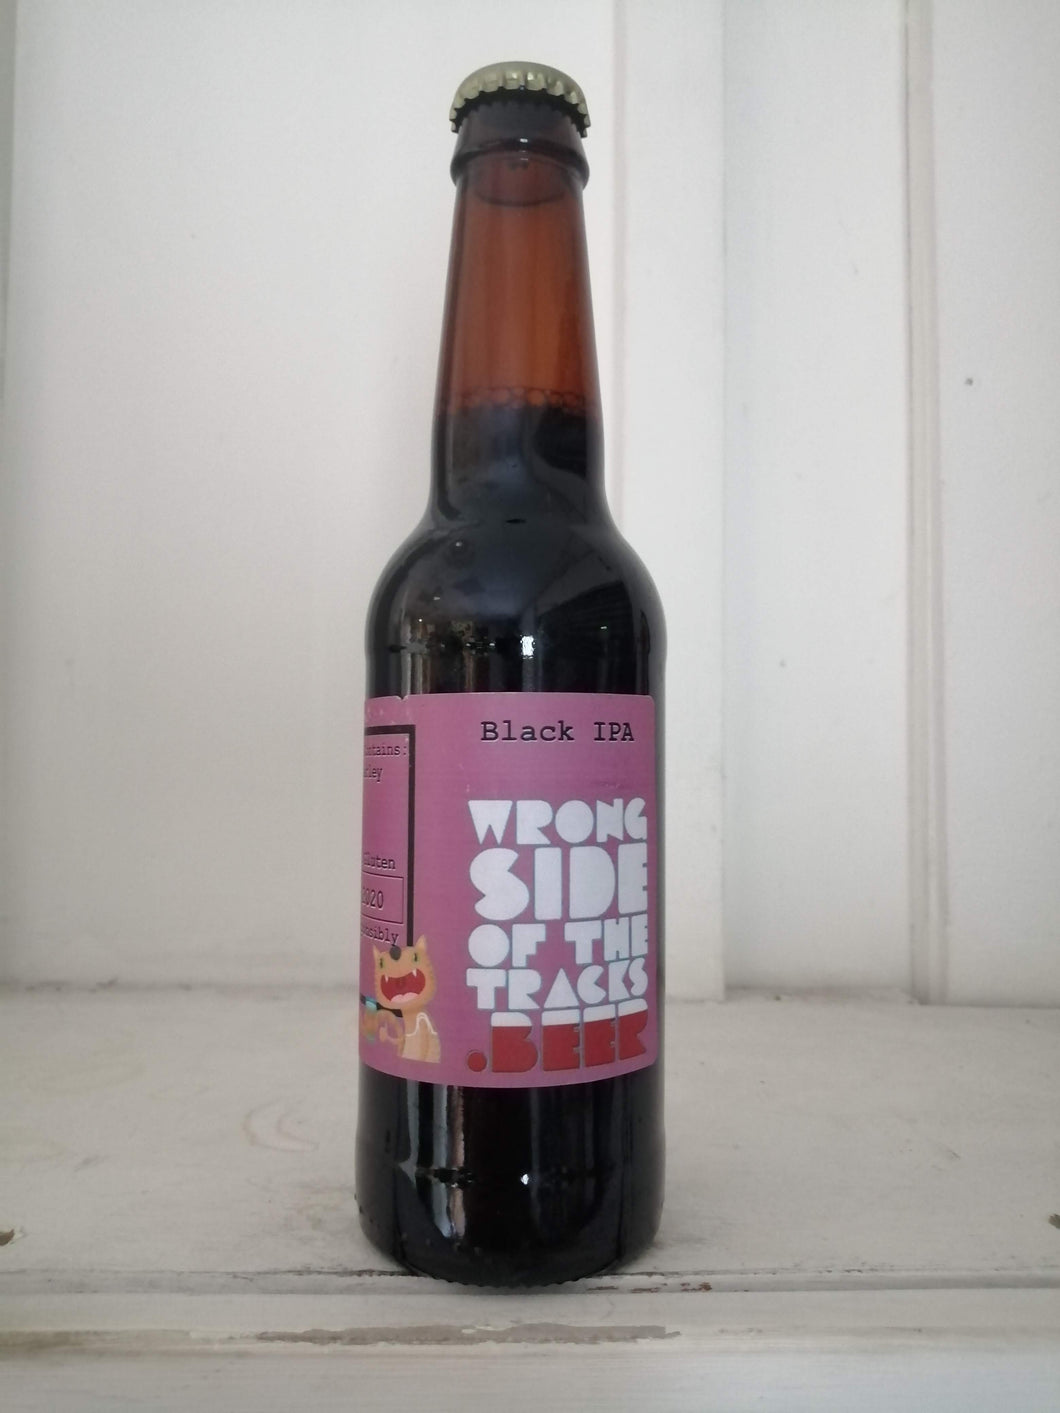 Wrong Side Of The Tracks Black IPA 6.6% (330ml bottle)